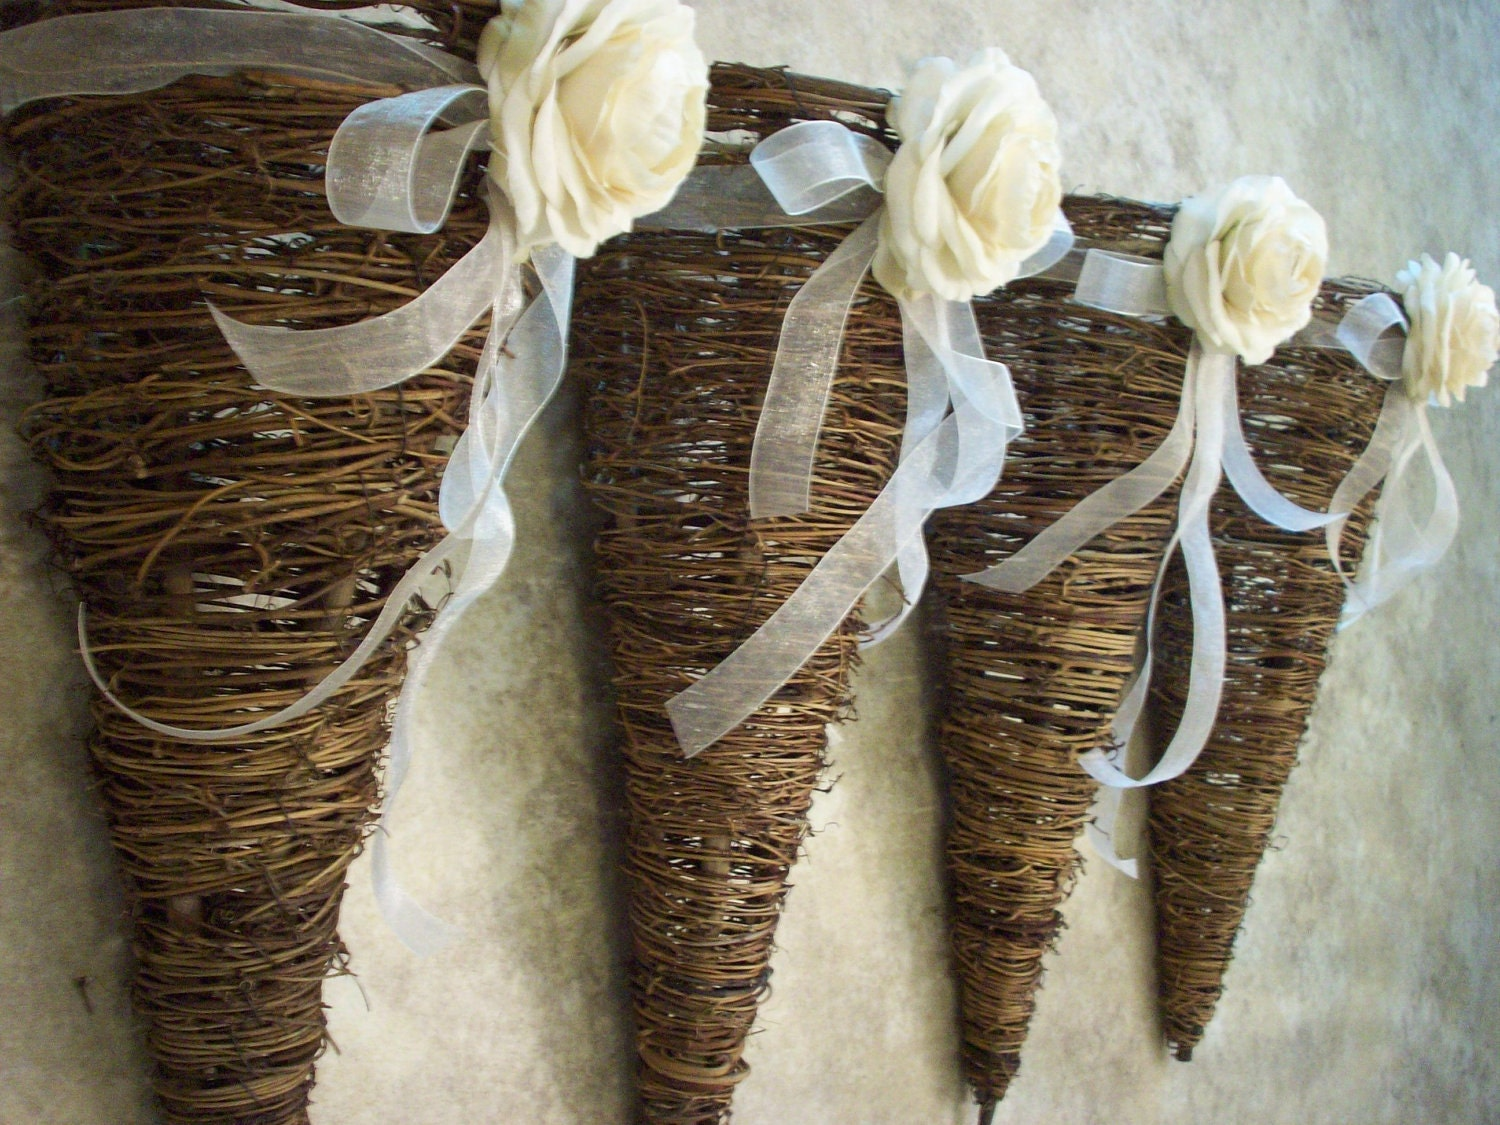 Rustic Grapevine Cone Basket Pew Decorations with Sheer Ribbon